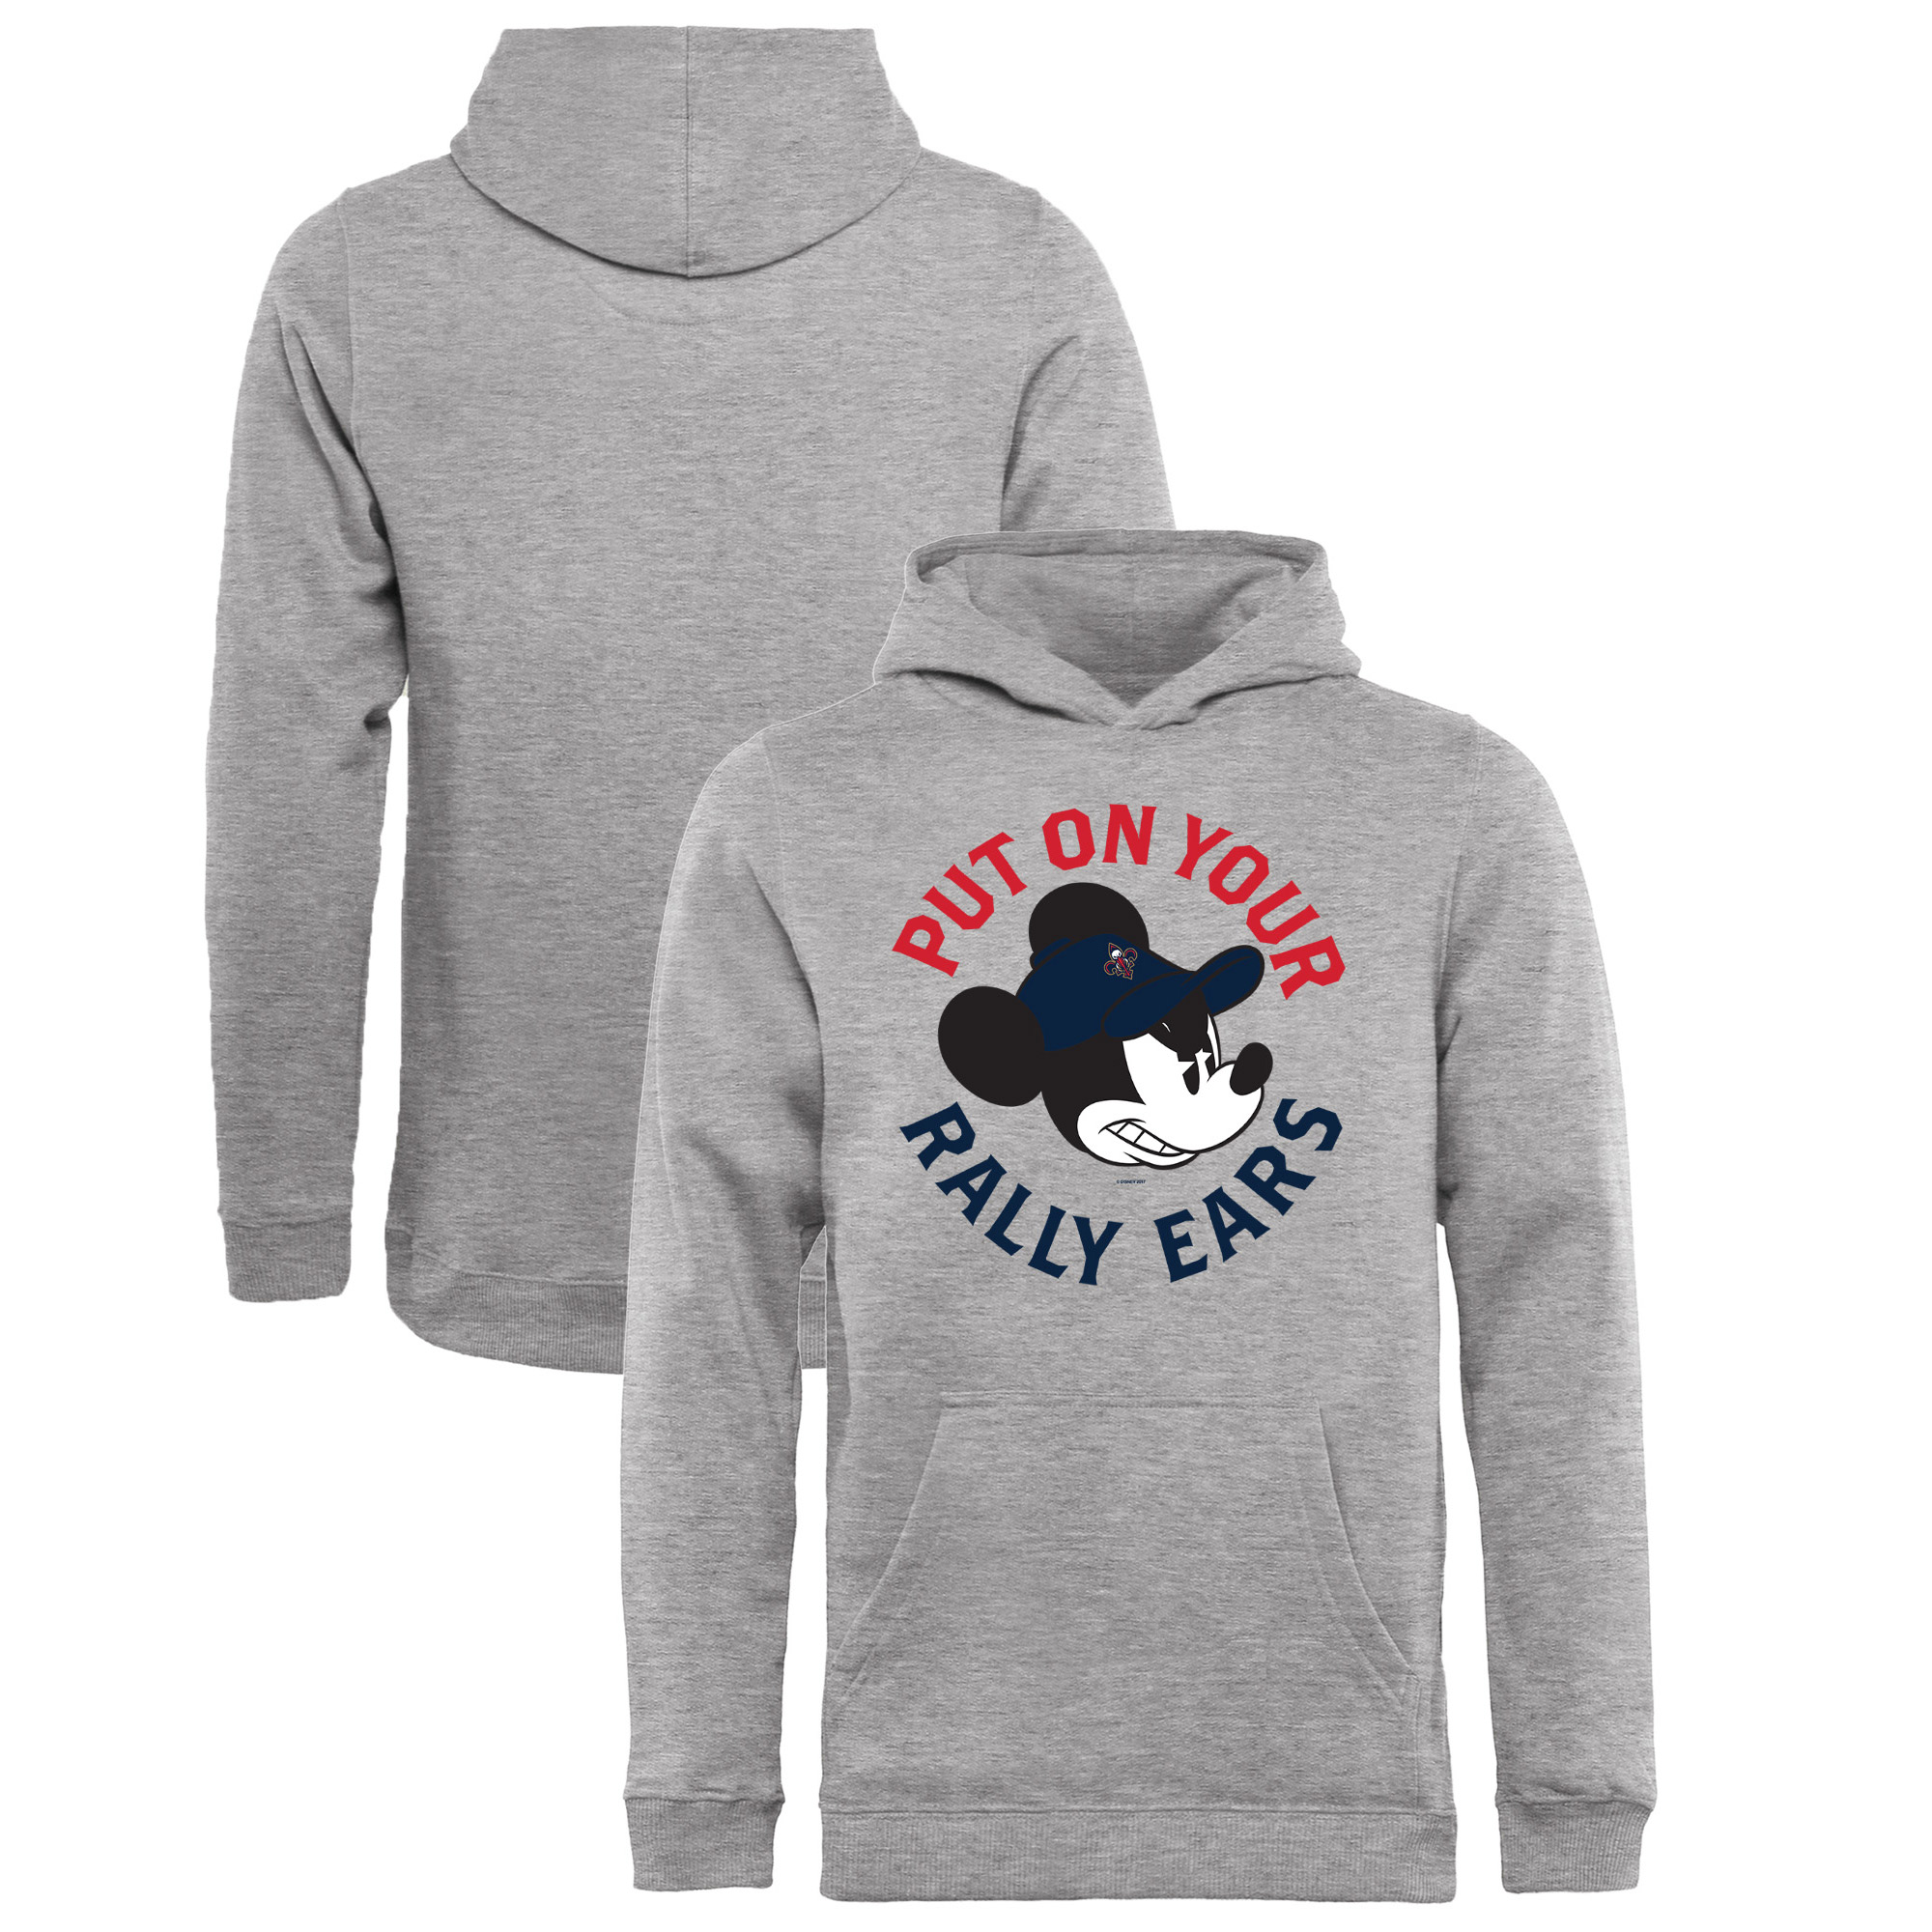 New Orleans Pelicans Fanatics Branded Youth Disney Rally Ears Pullover Hoodie - Ash